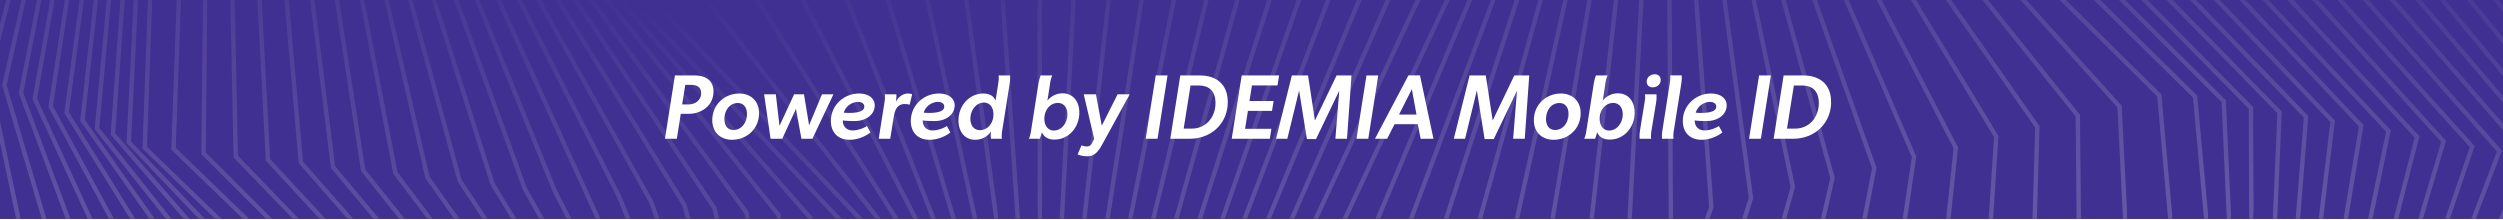 Idemia_Middle